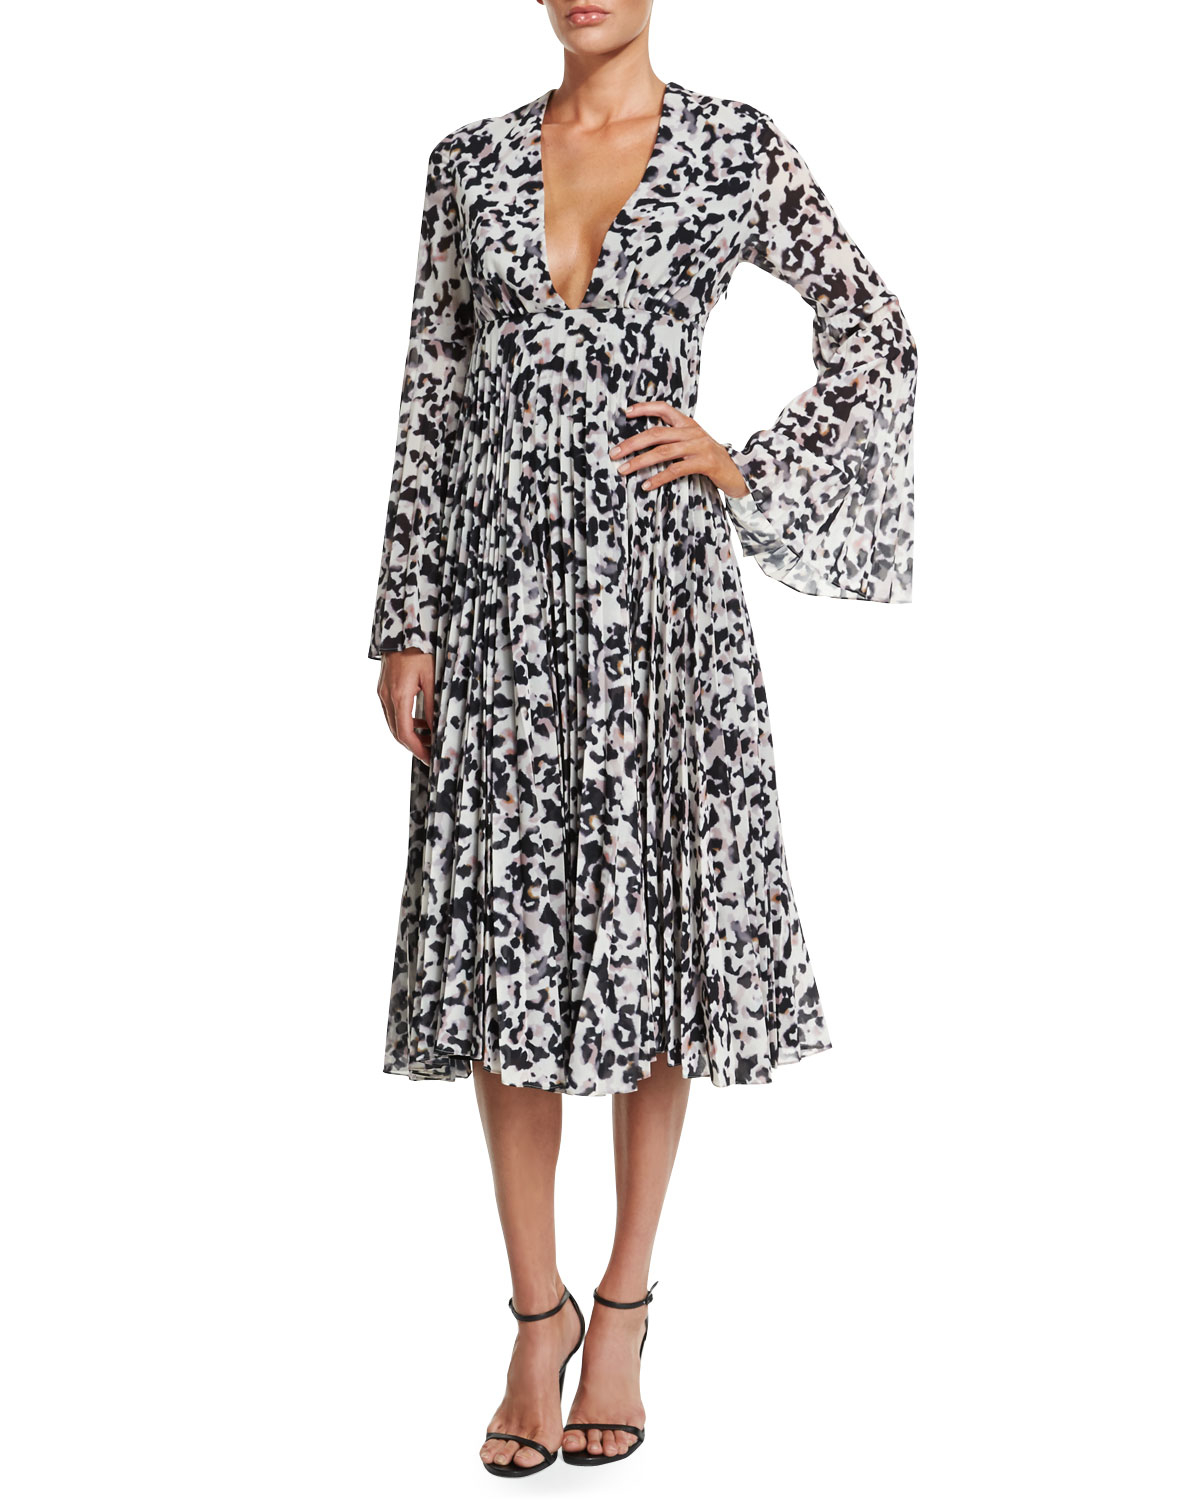 379648a2e88 CAMILLA AND MARC Long Sleeve Pleated Midi Cocktail Dress Black   White -  Size 10